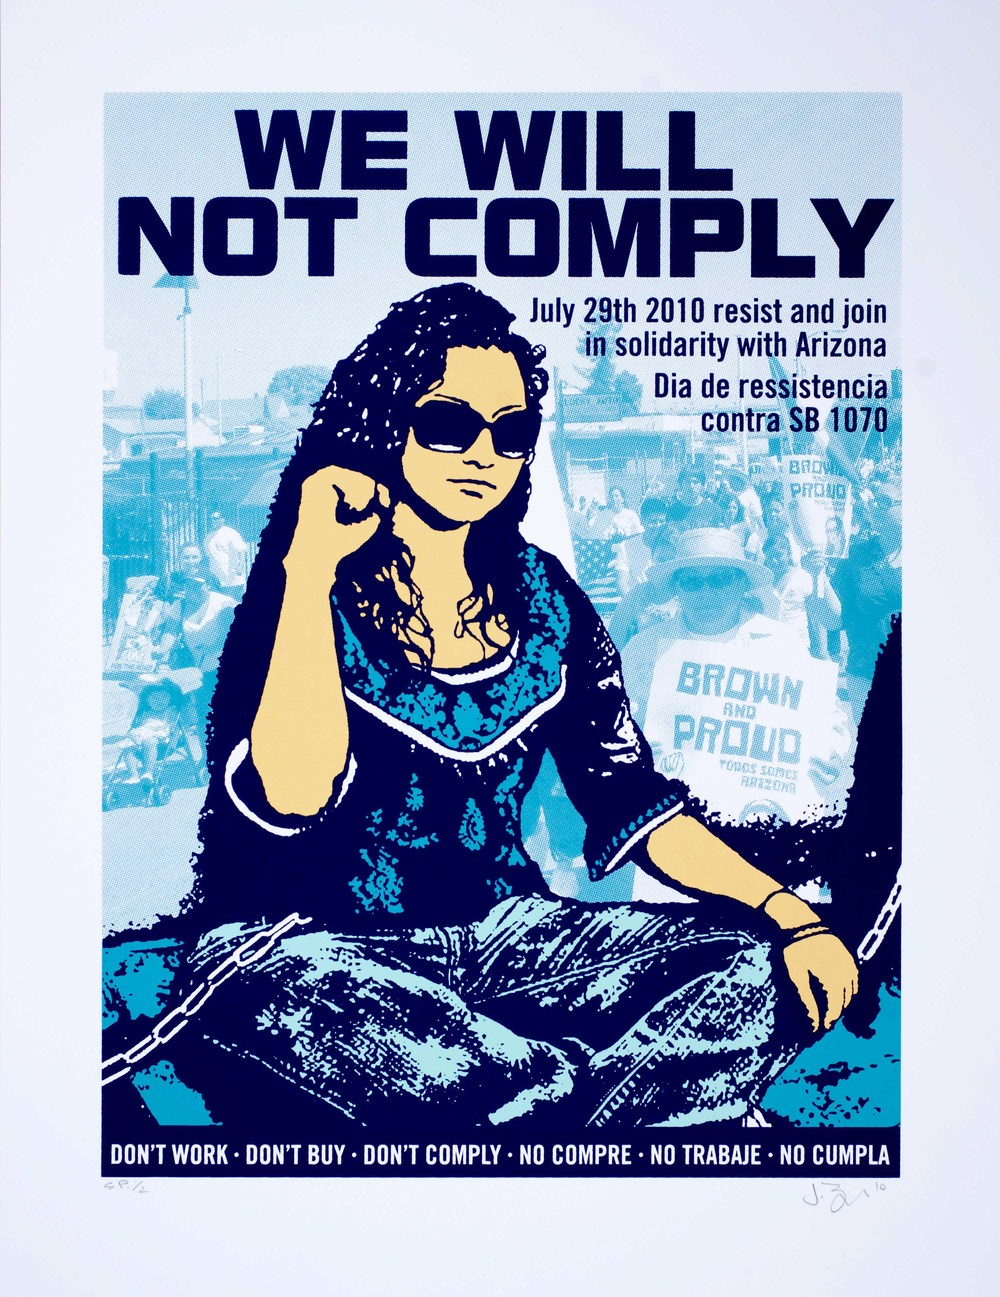 Jesus Barraza et Diane Ovalle - We will not comply